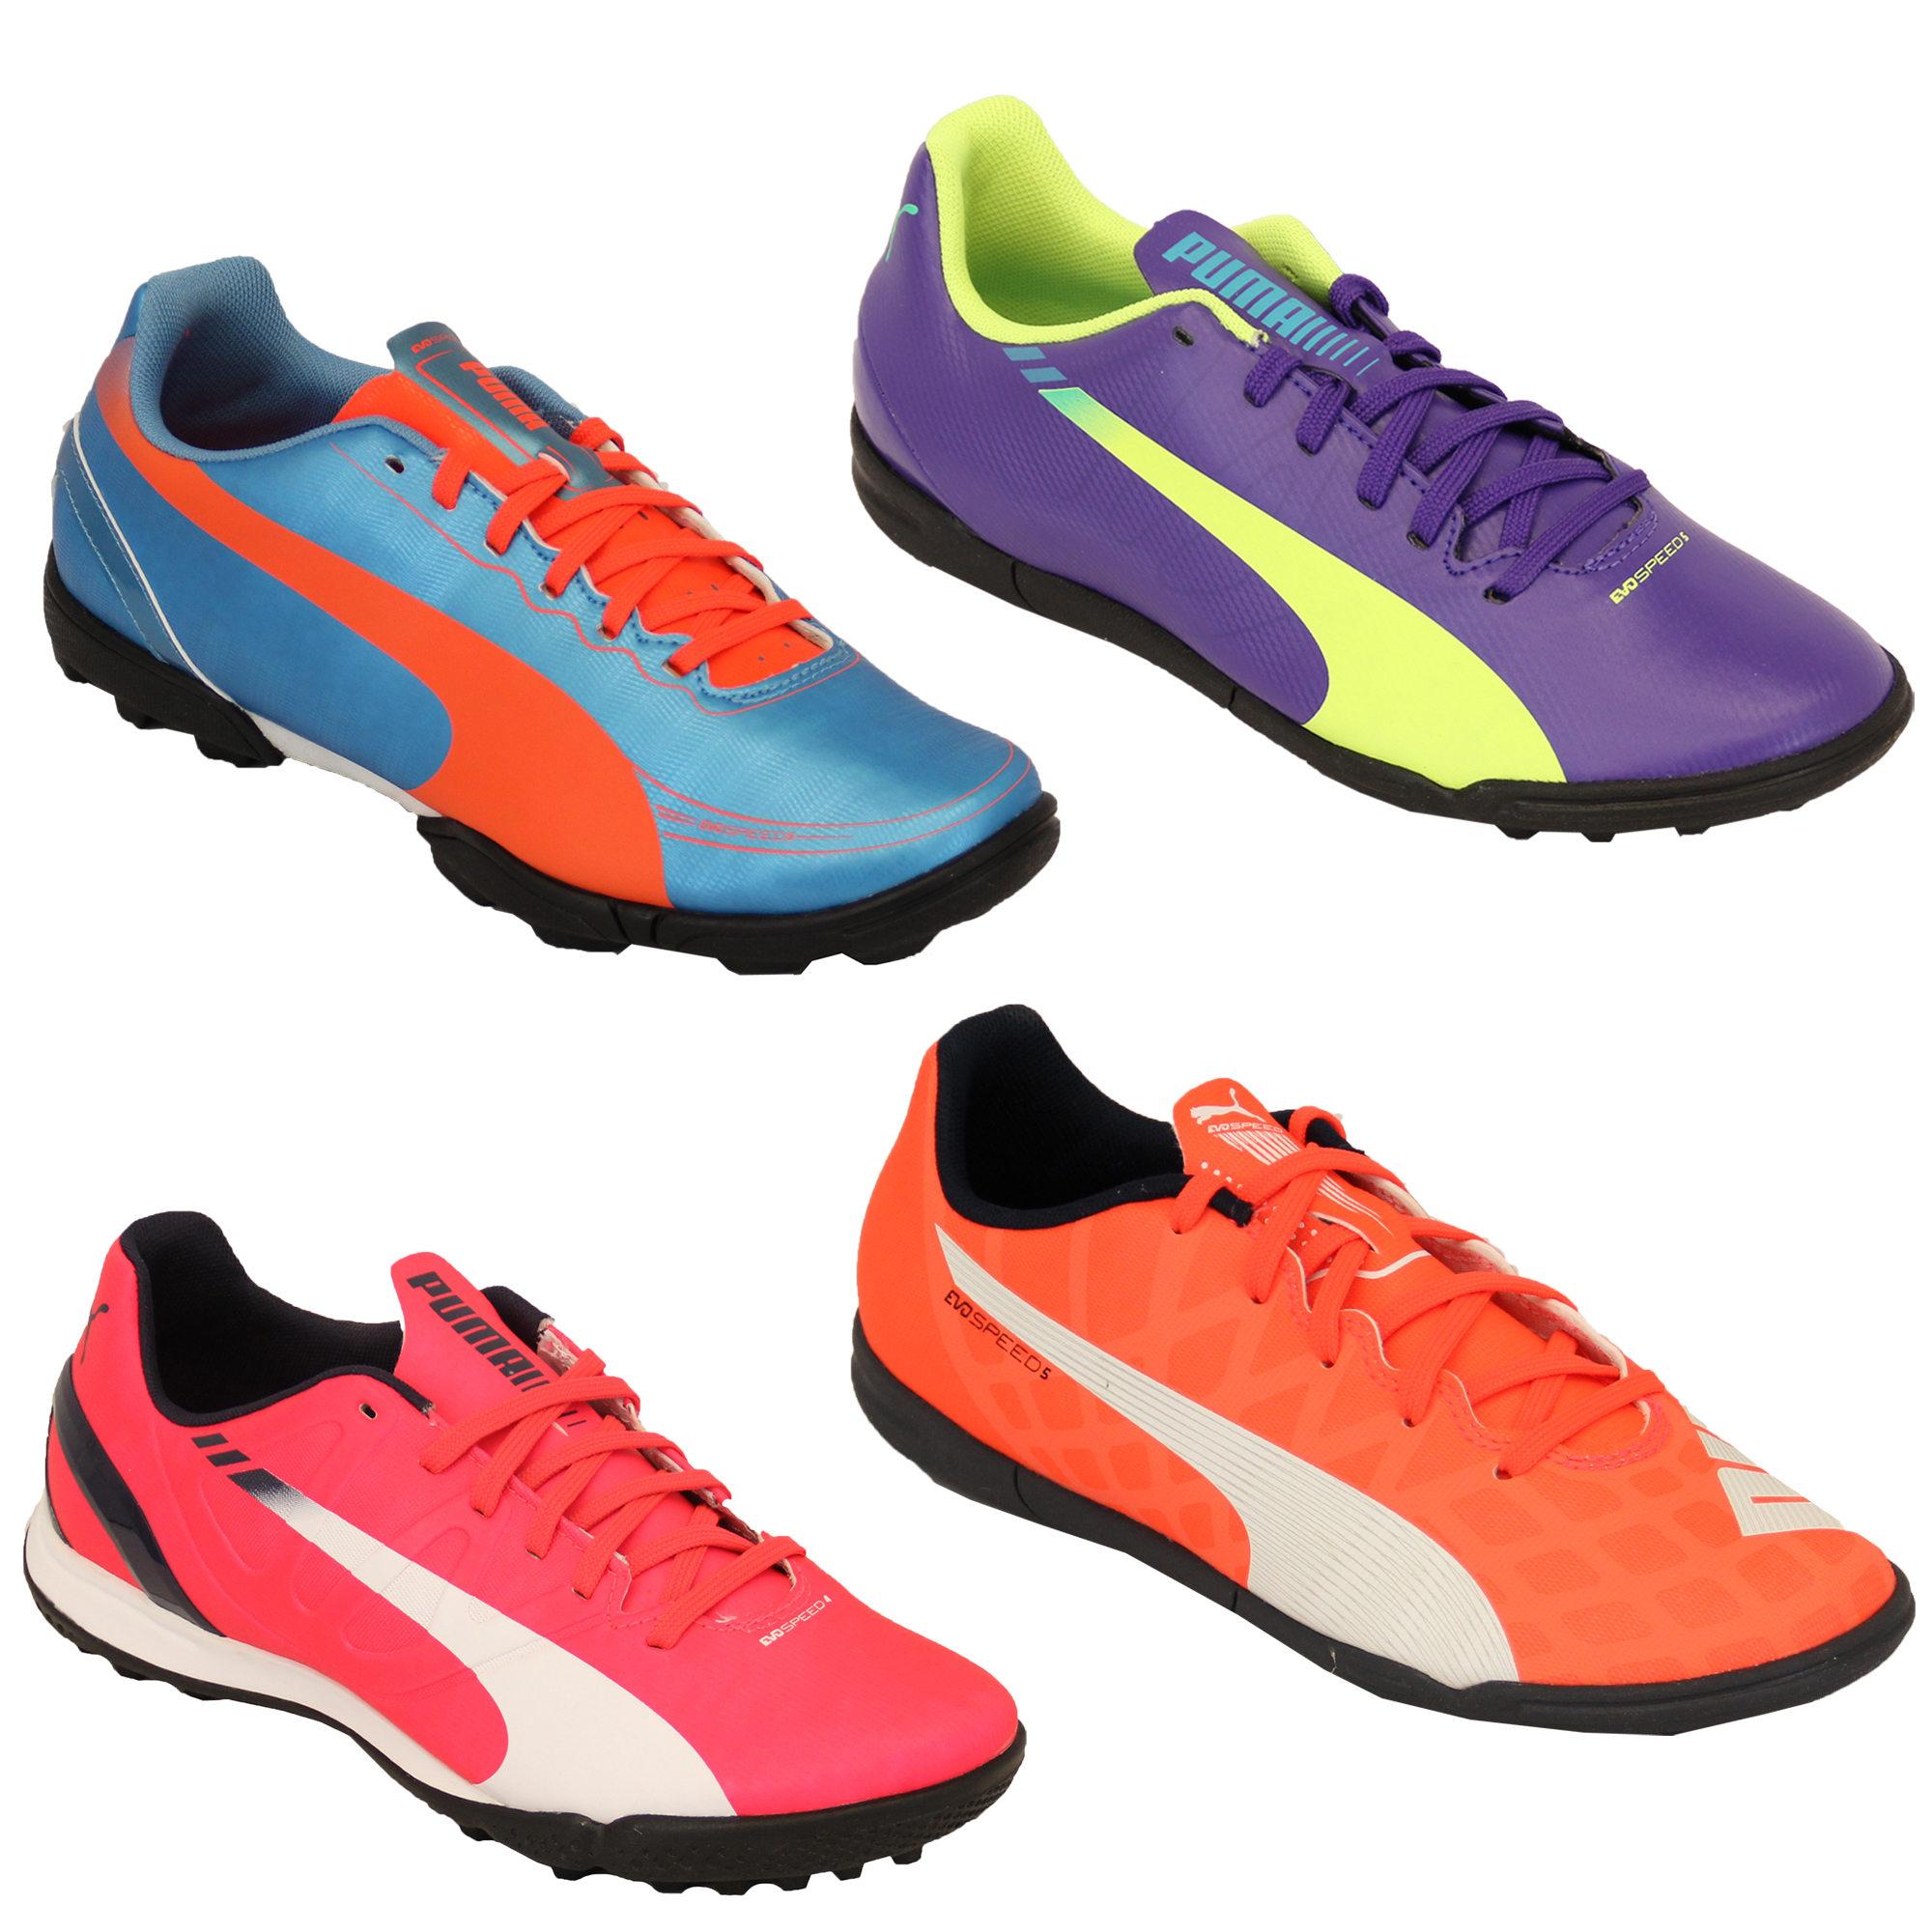 Puma sports shoes for girls